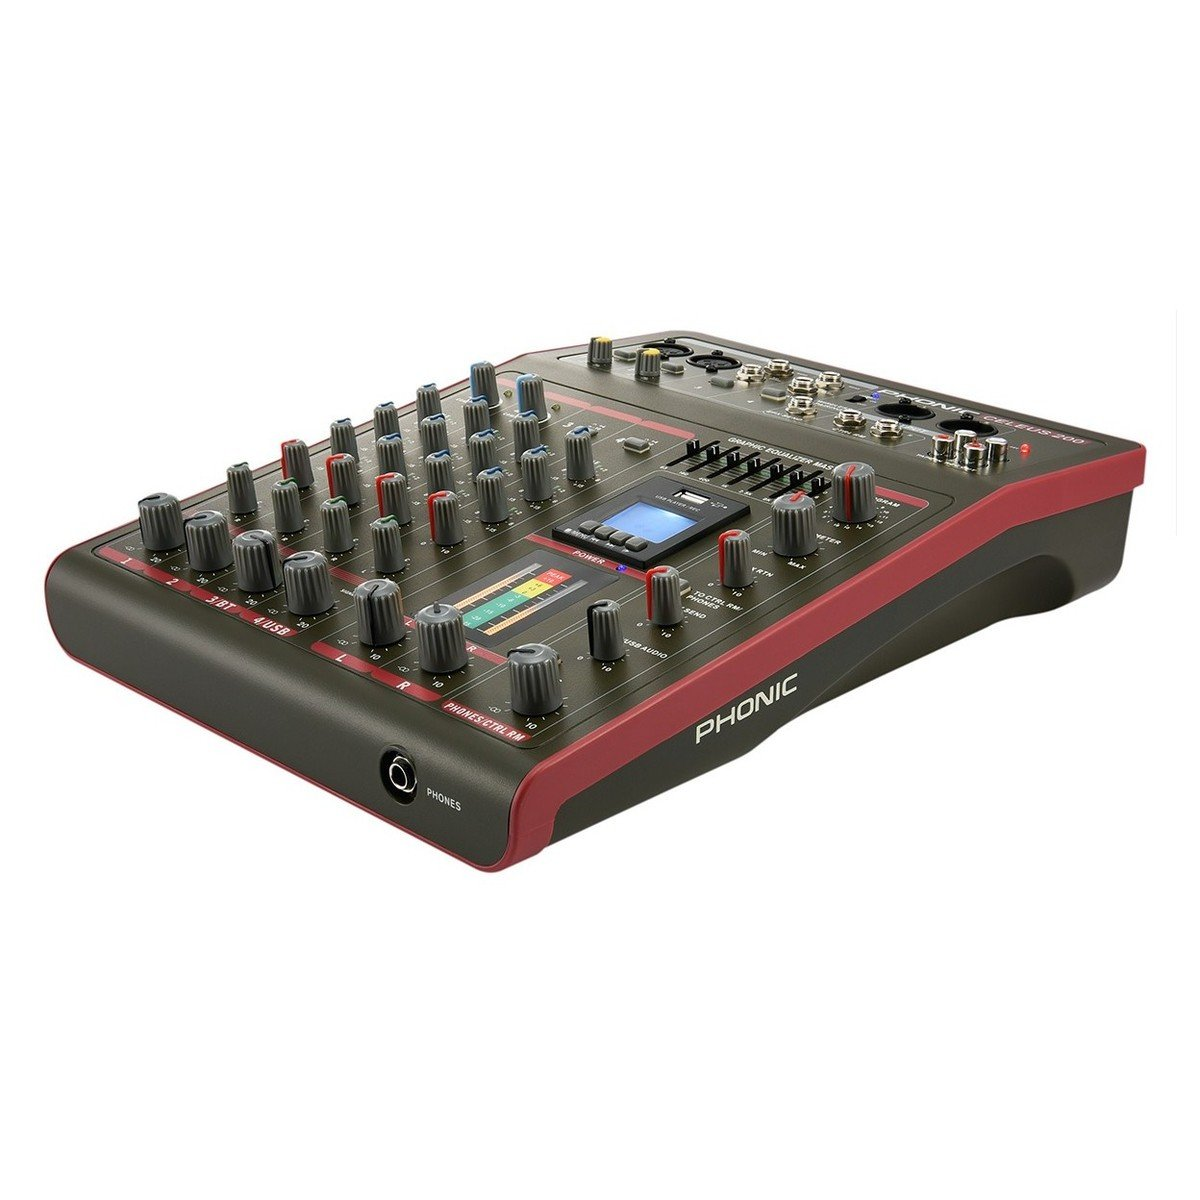 Phonic CELEUS 200 Mixer analogico con registratore USB e Bluetooth